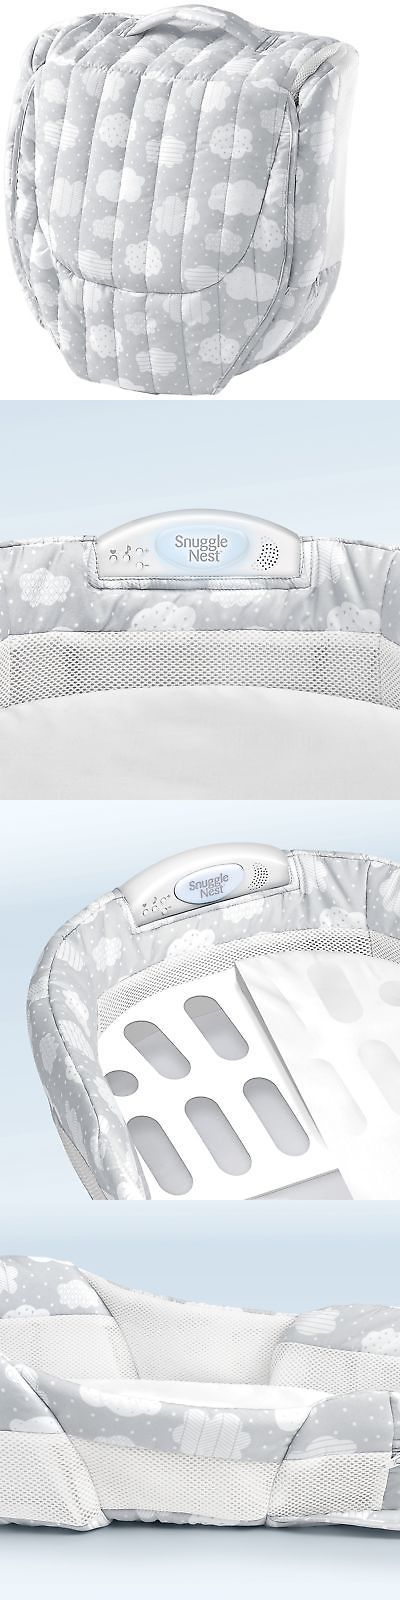 Baby Co-Sleepers 121152: Baby Delight Snuggle Nest Harmony Portable Infant Sleeper Baby Bed - Silver C... -> BUY IT NOW ONLY: $61.21 on eBay!